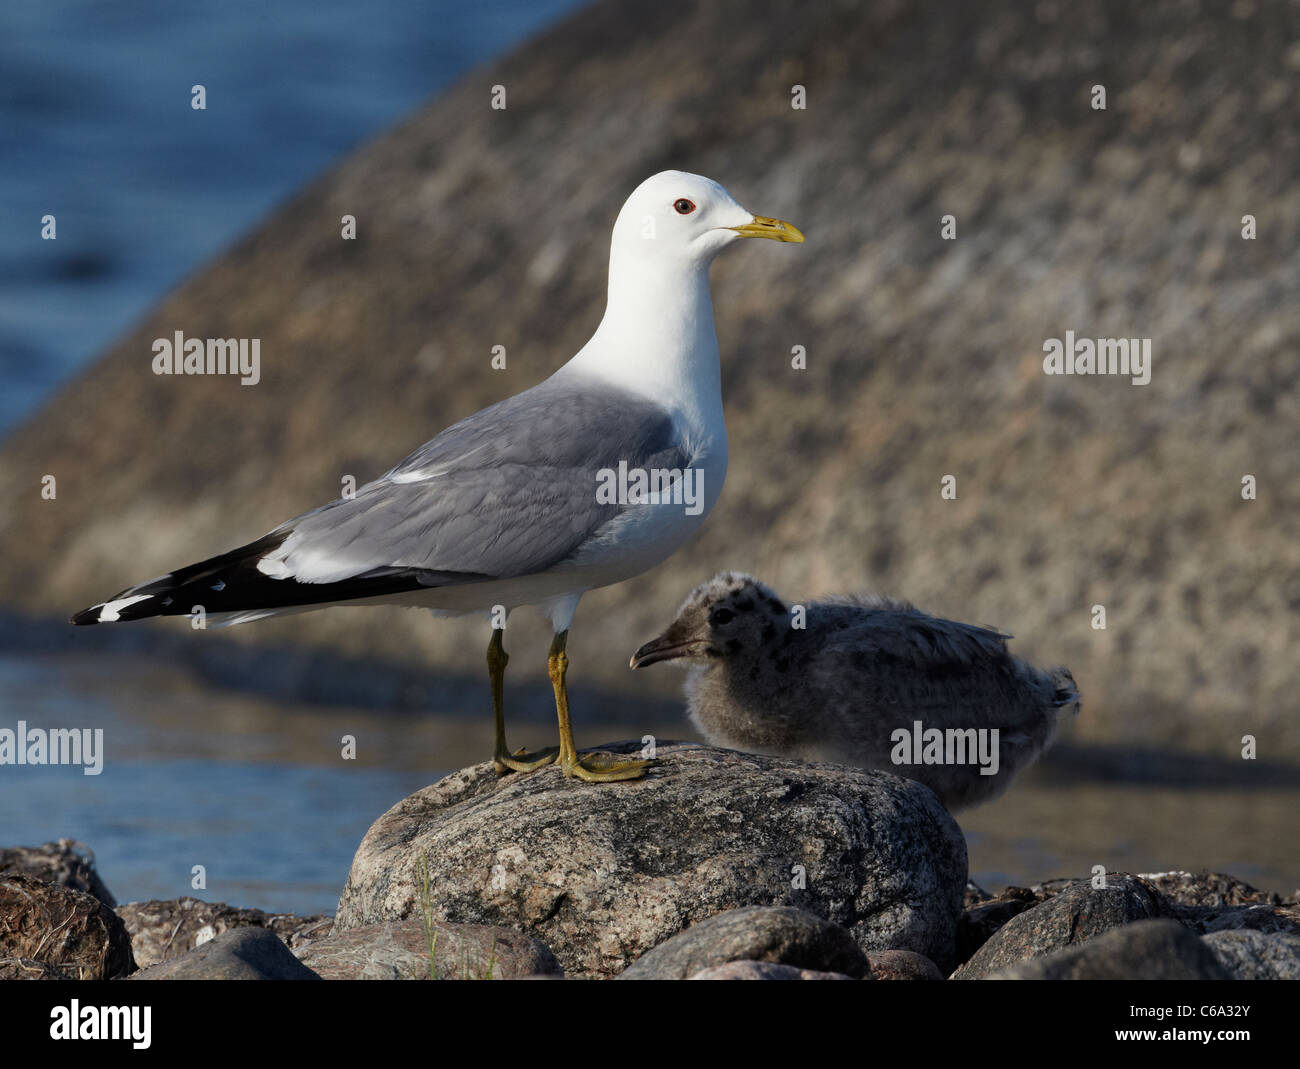 Common Gull (Larus canus). Adult with chick standing on a rock. Stock Photo